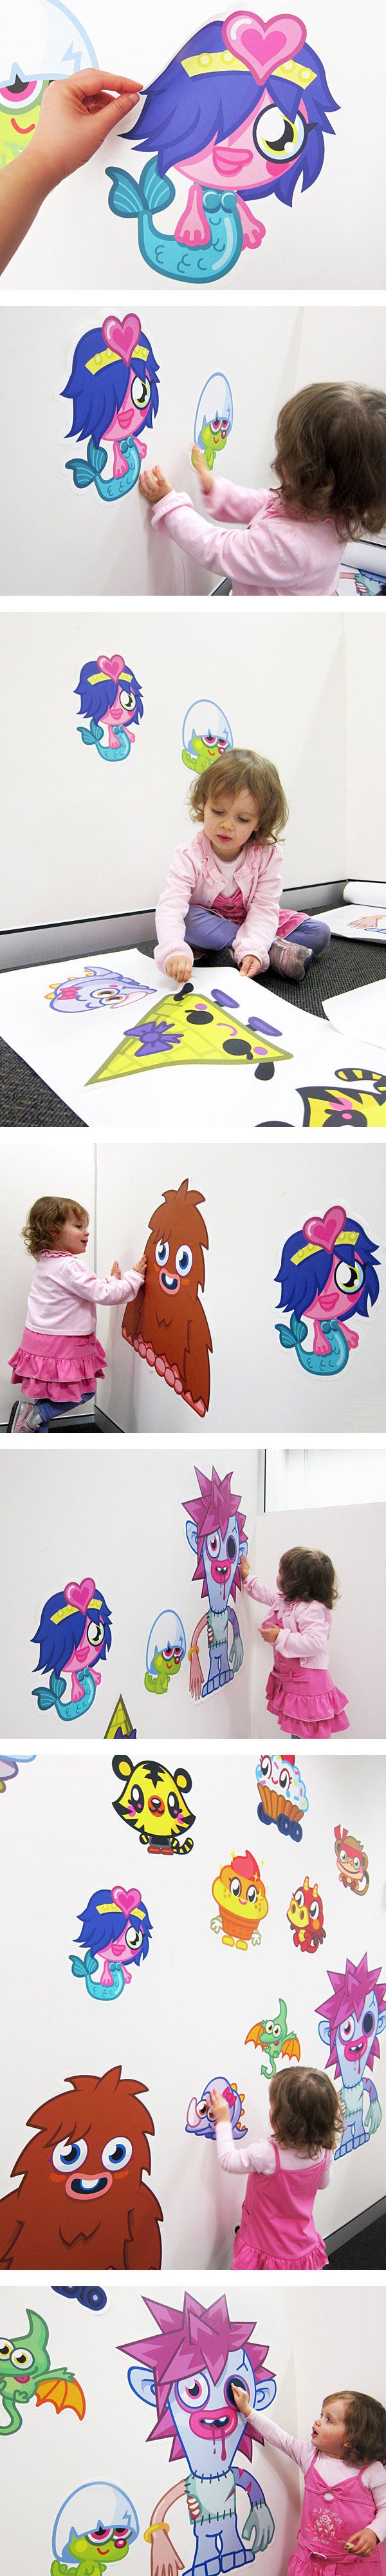 WALLS 360 wall graphics Moshi Monsters http//www